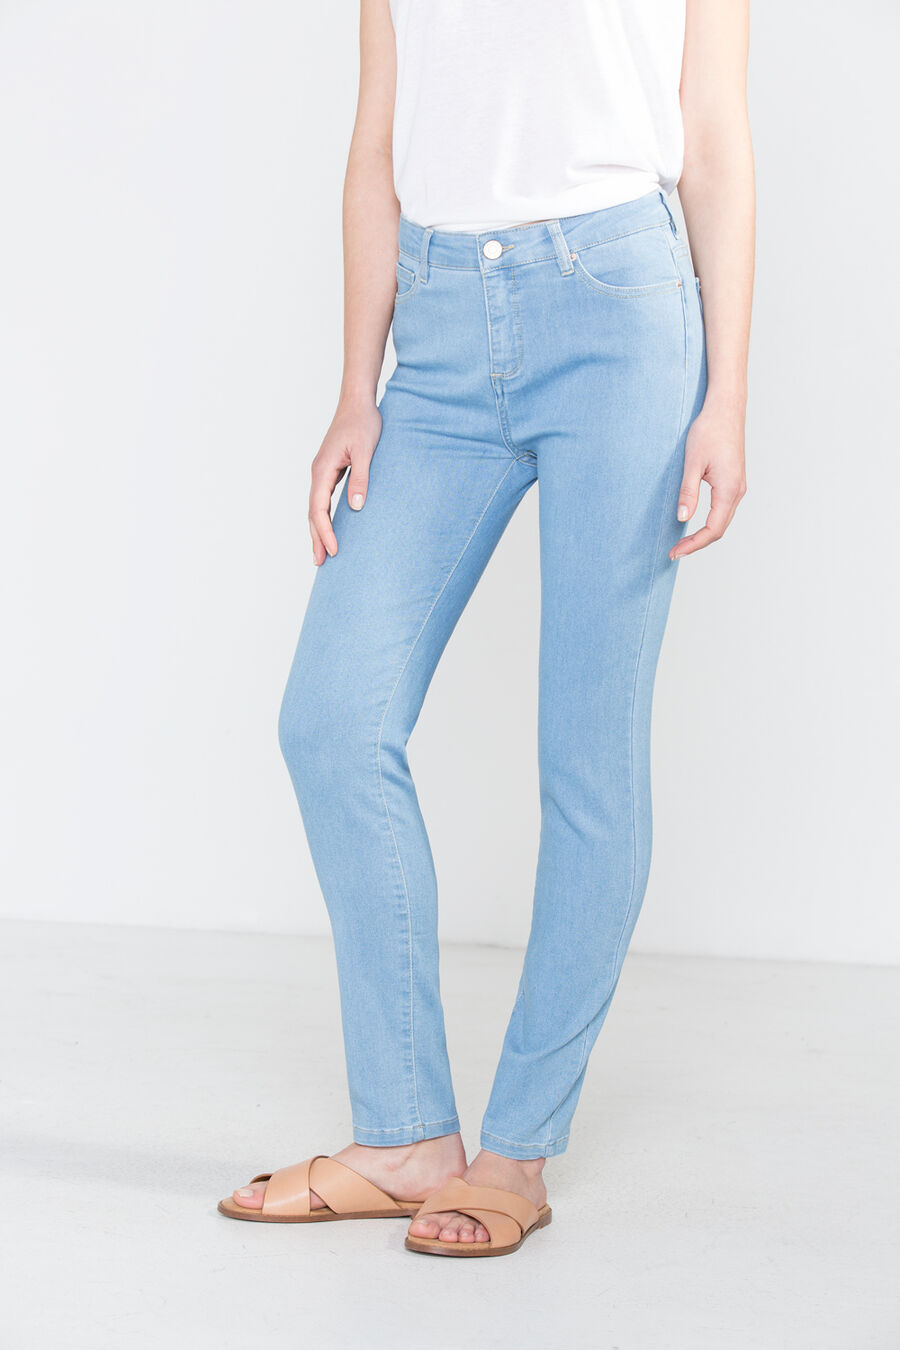 Sensational fit denim trousers